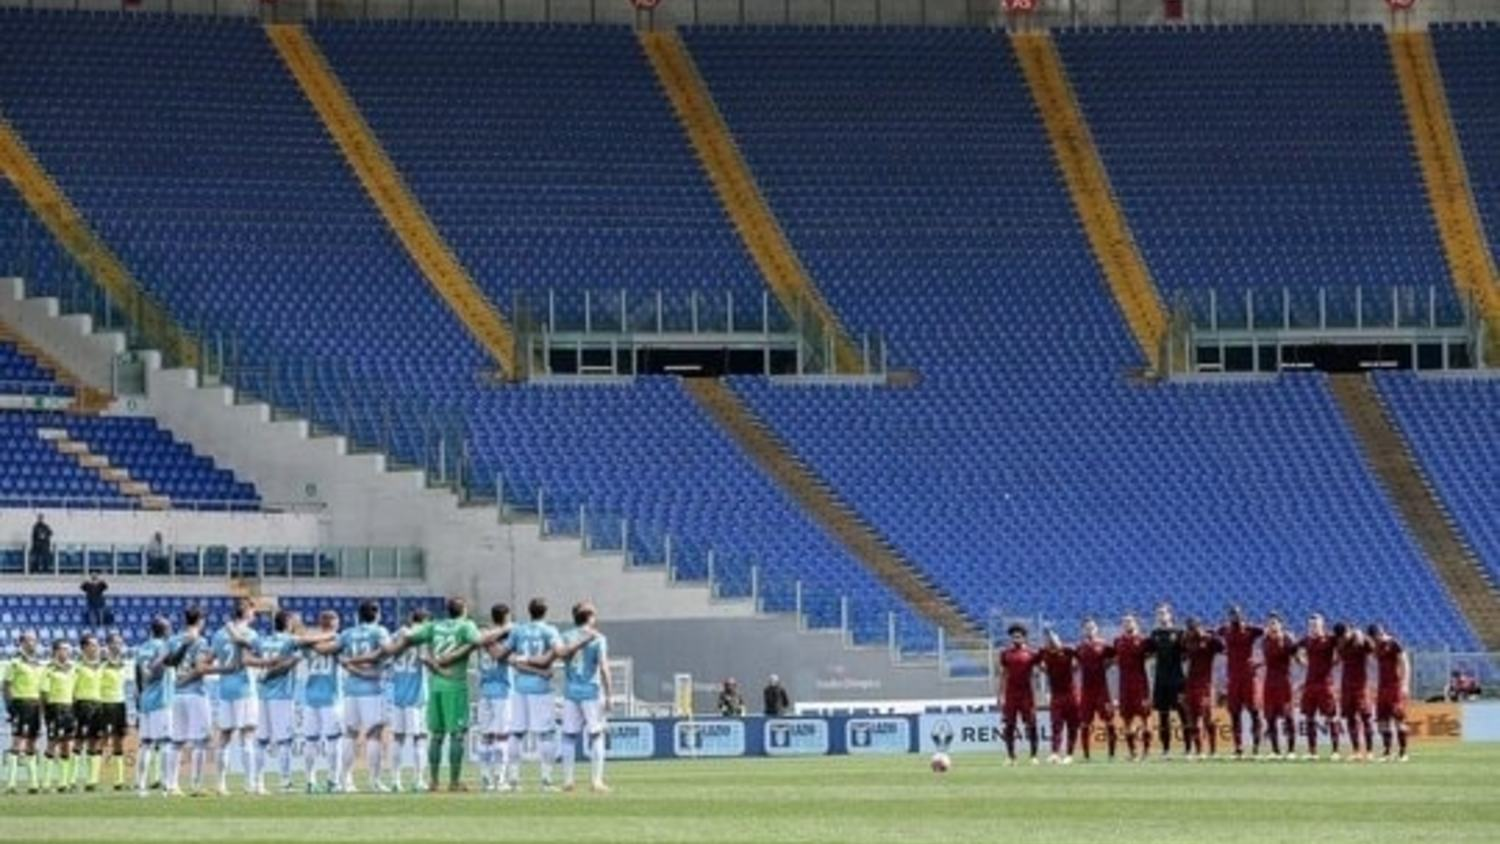 Rome: Another derby without ultras...